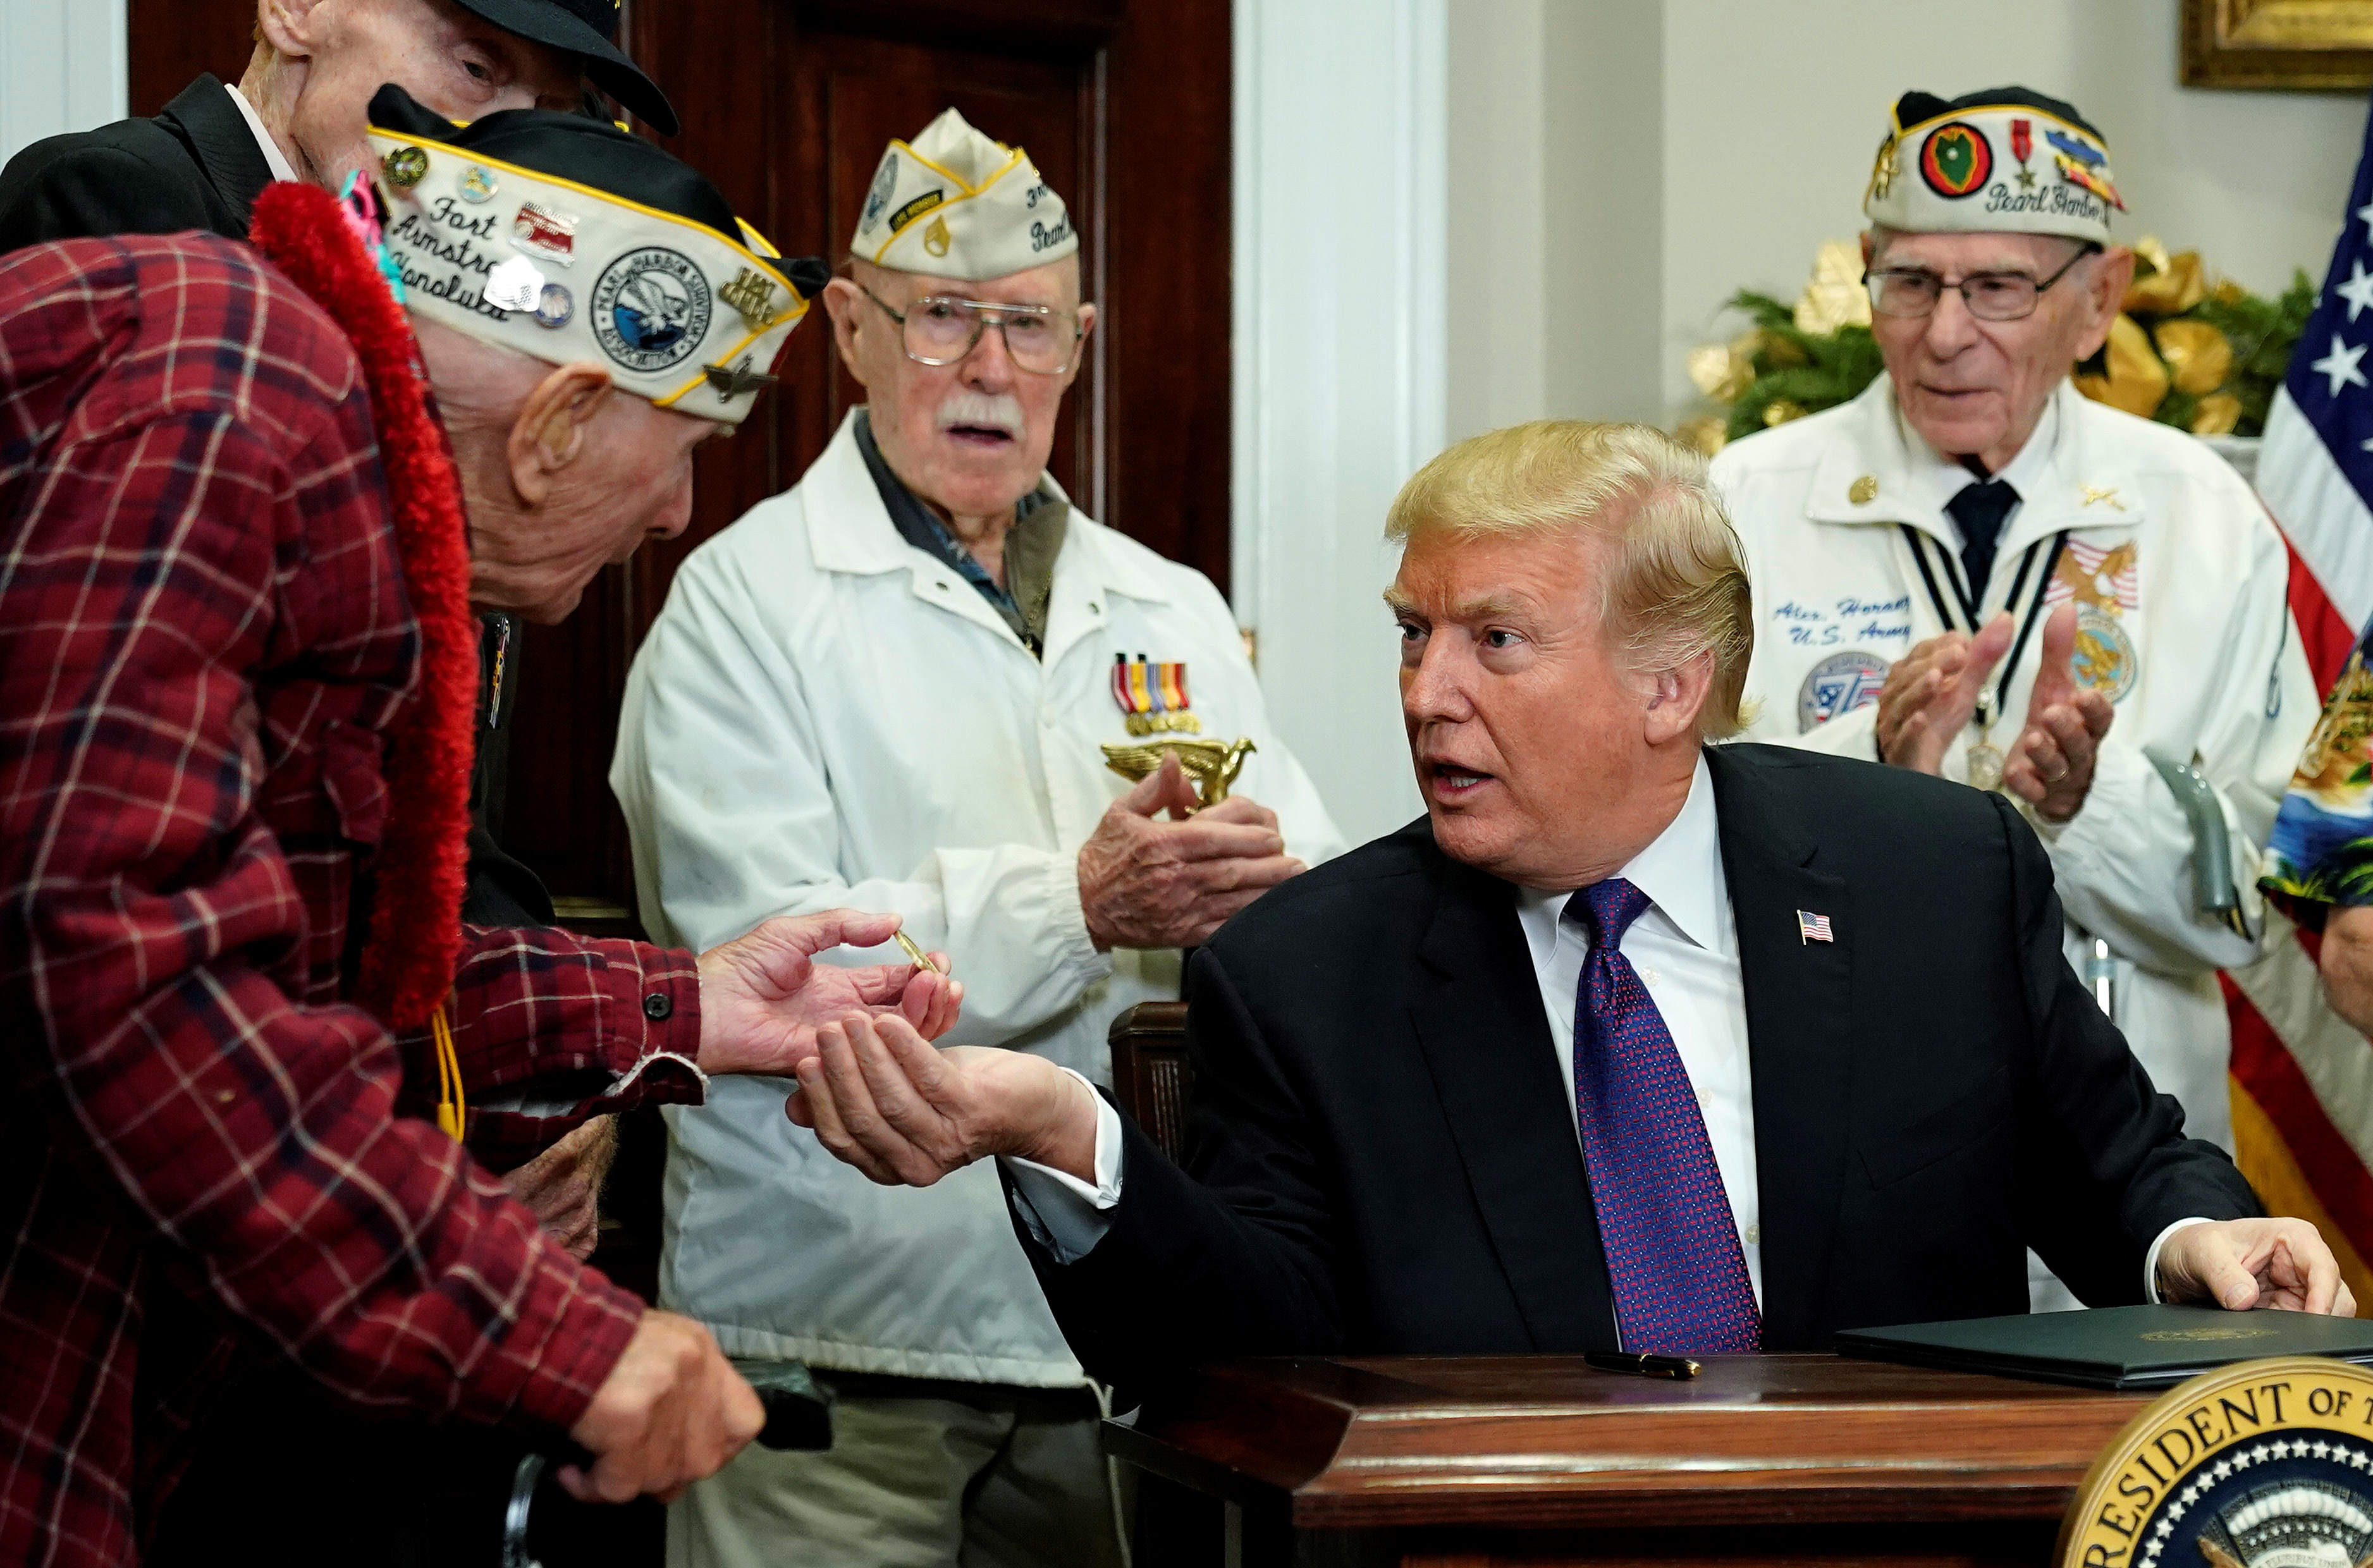 Veteran showing Trump a coin.